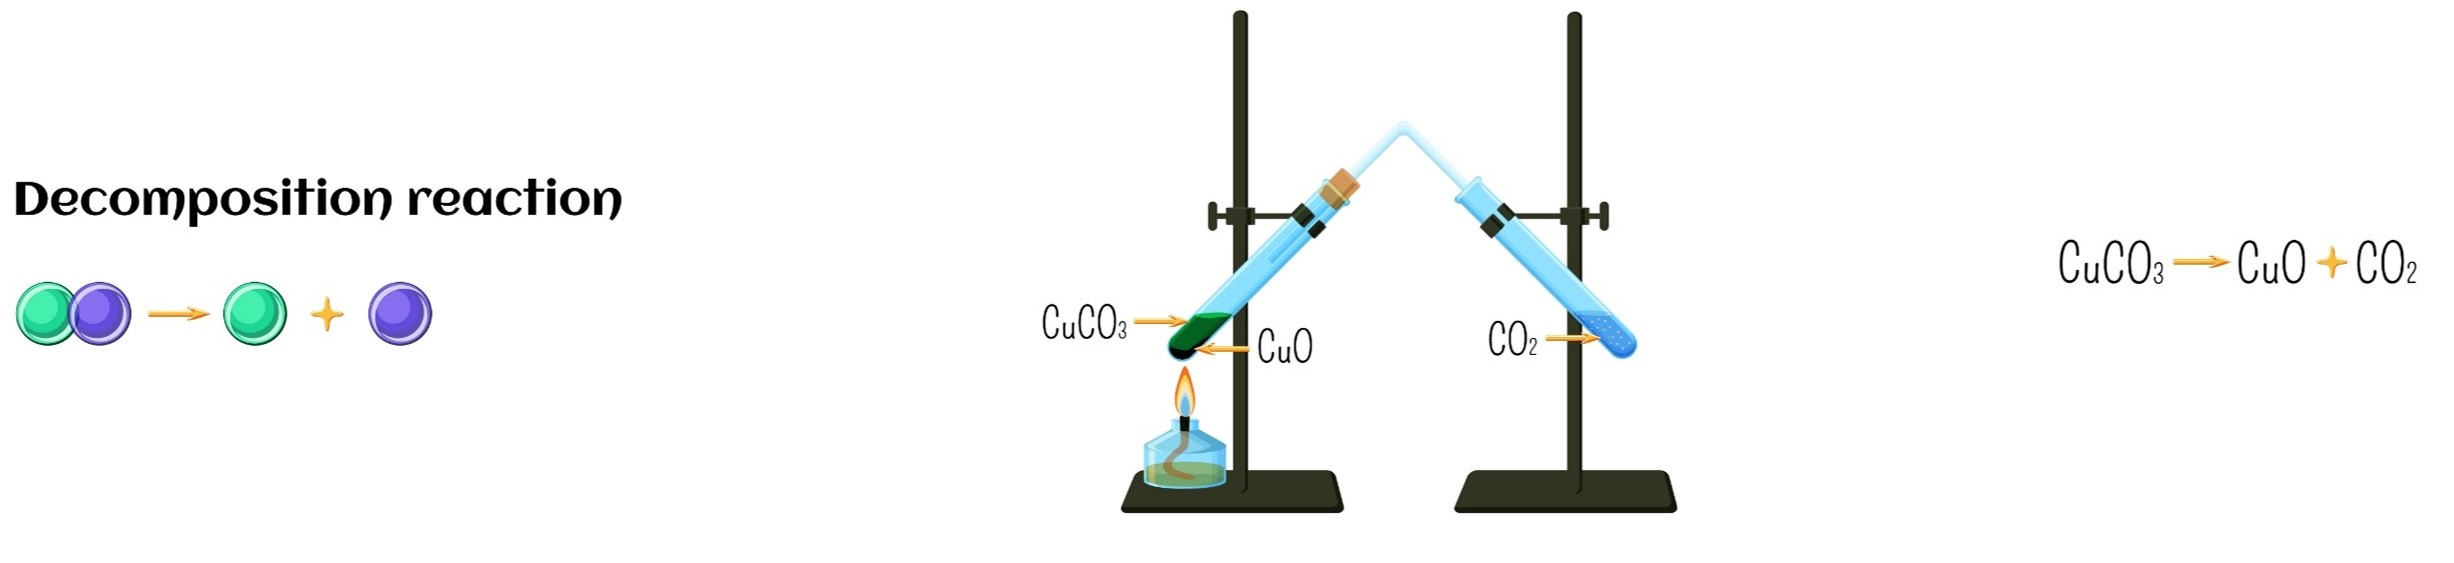 decom reaction - Section 5: Chemical Reactions - Rates, Type, and Energy